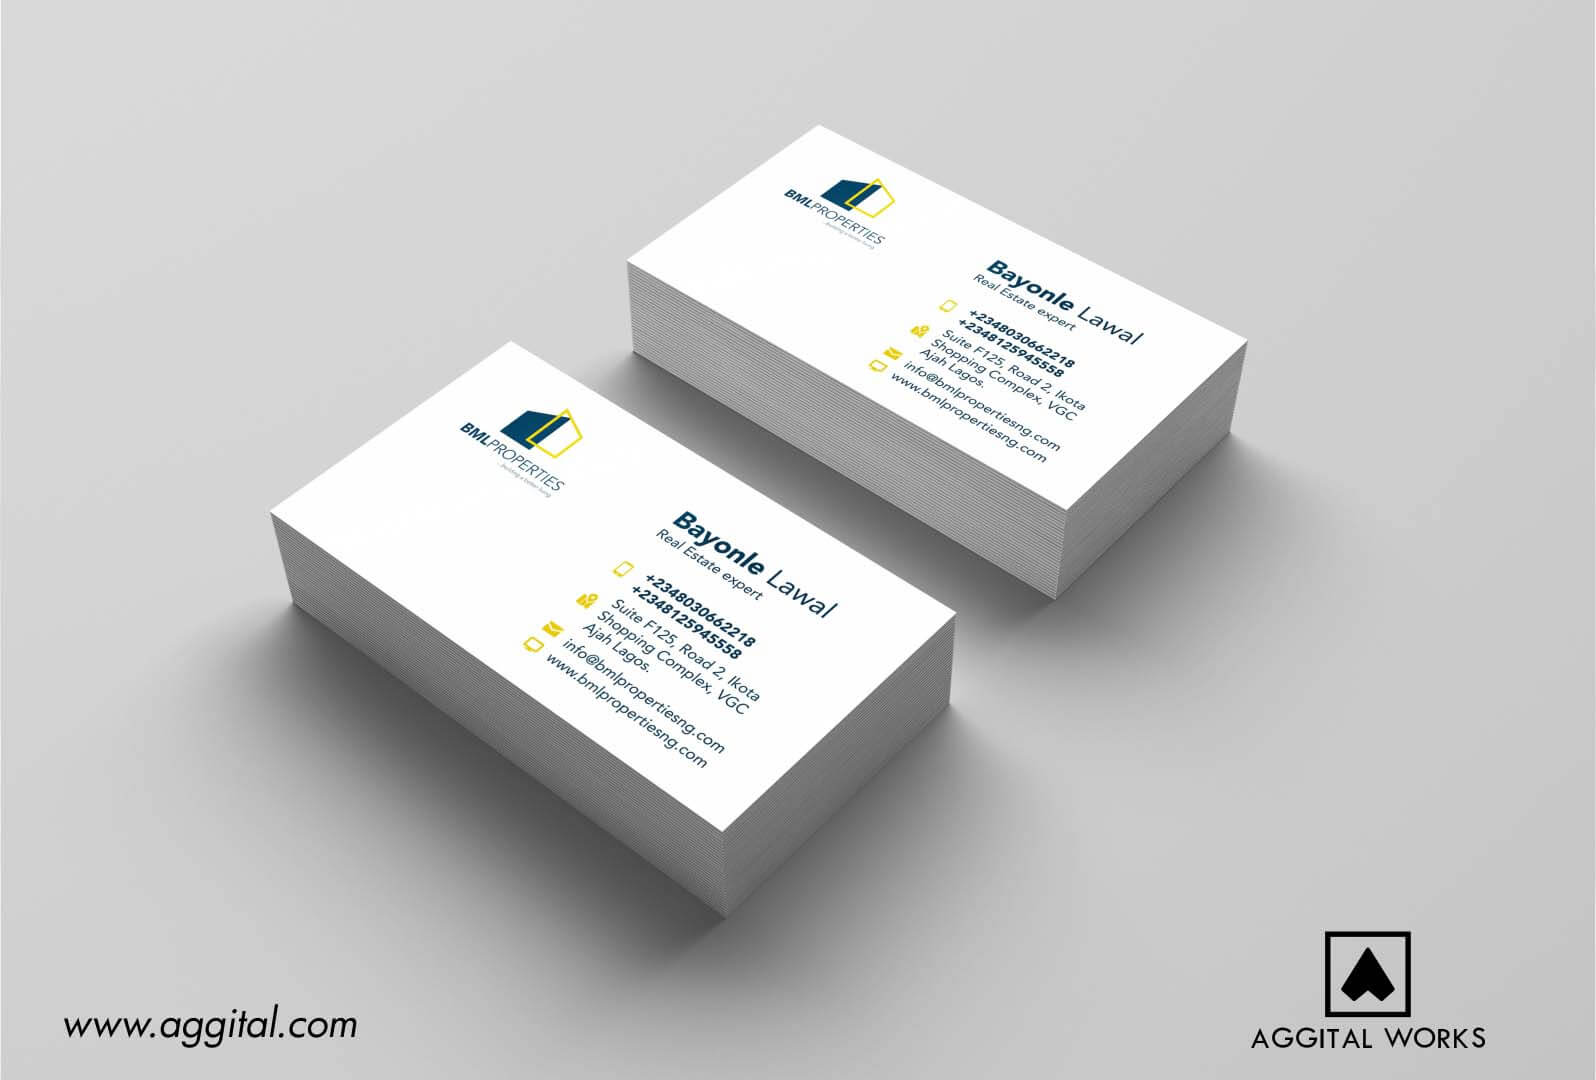 Bml properties logo design and business card aggital works bml properties logo design and business card magicingreecefo Image collections